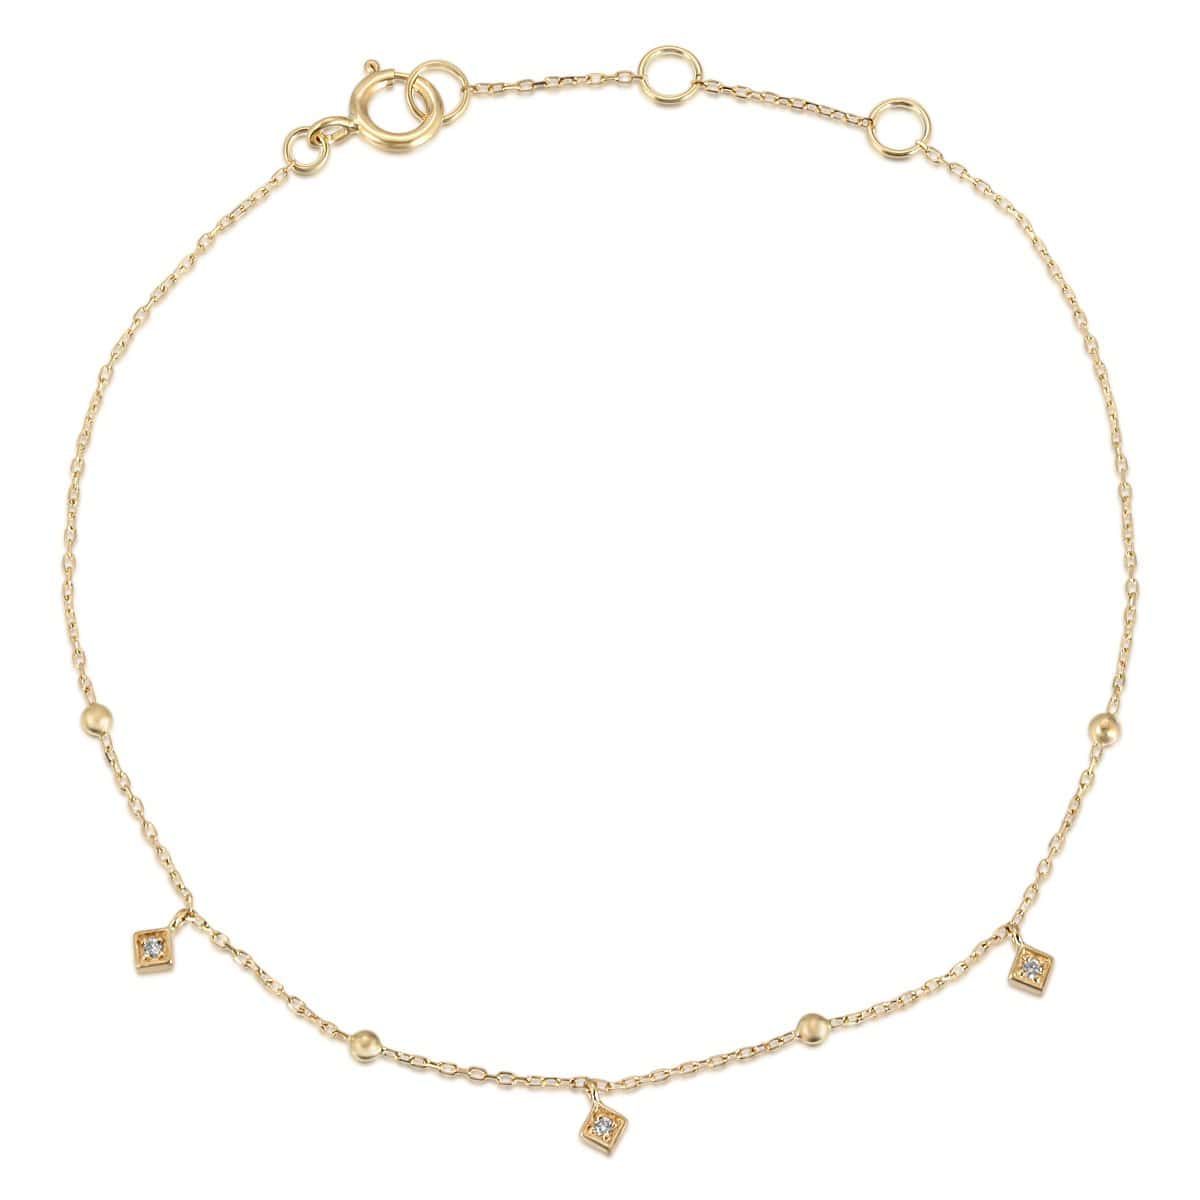 3 Diamond Drop Gold Chain Bracelet